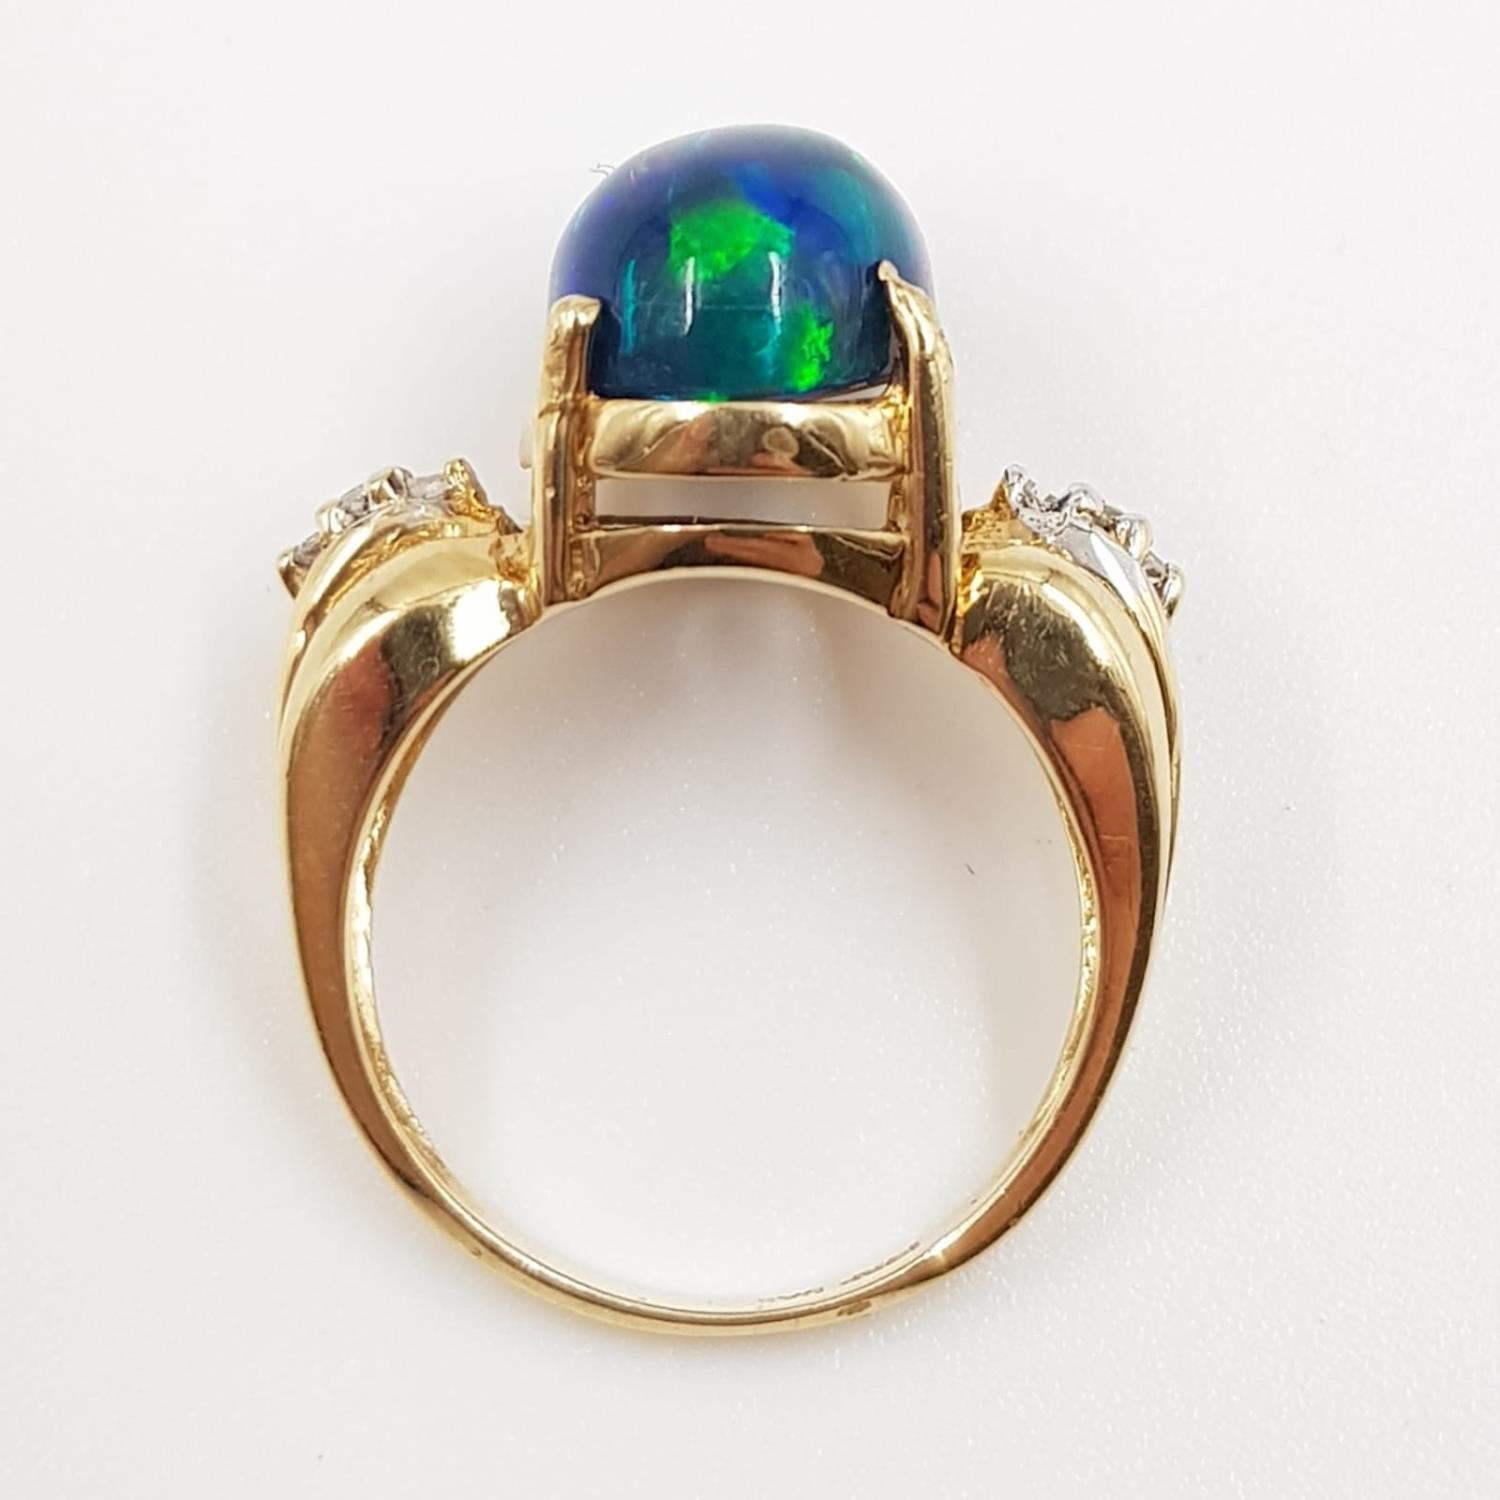 A 14ct gold, opal and diamond ring. 5g total weight and is size M. - Image 3 of 4